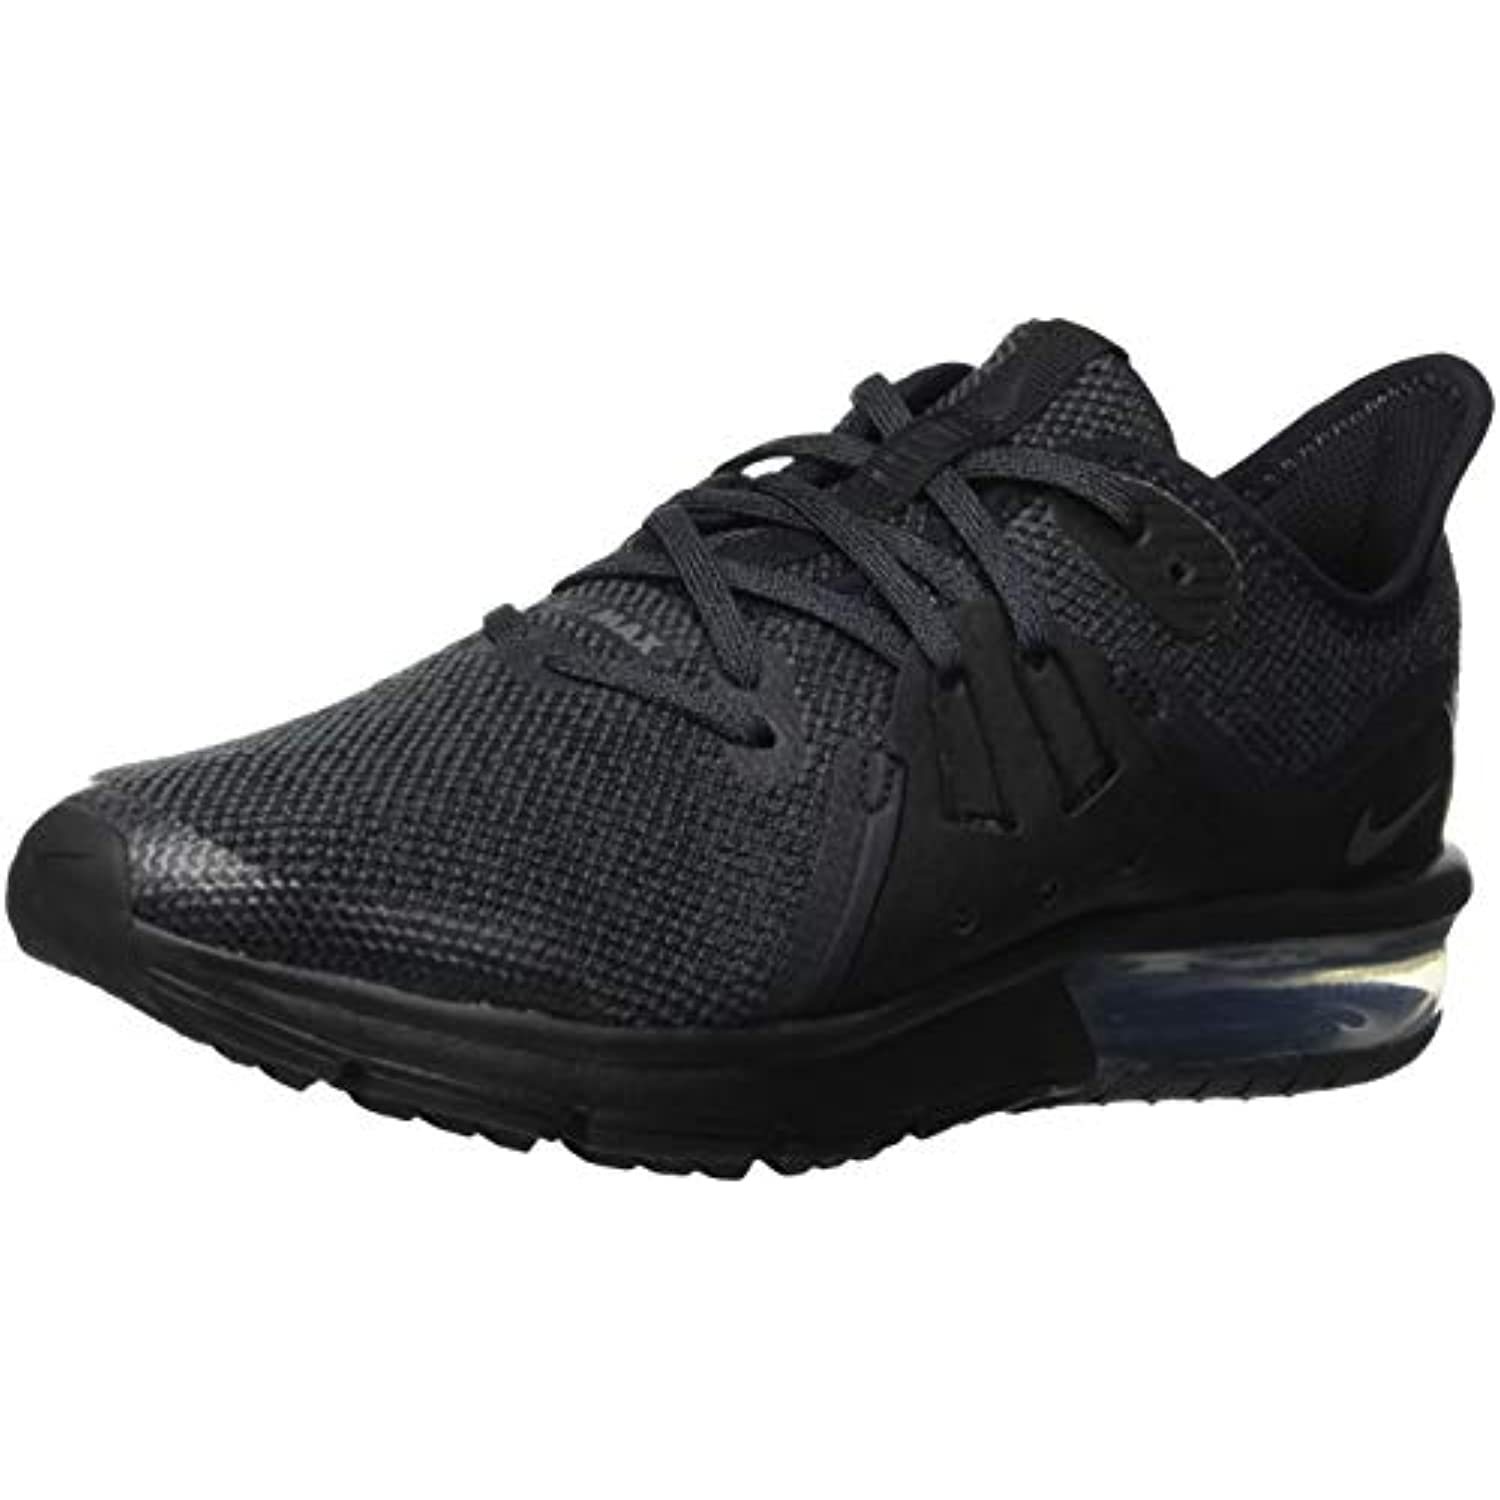 NIKE Air Max Sequent 3 GS , Chaussures de de de Gymnastique gar ccedil;on - B072WHMCNL - 40f7c7